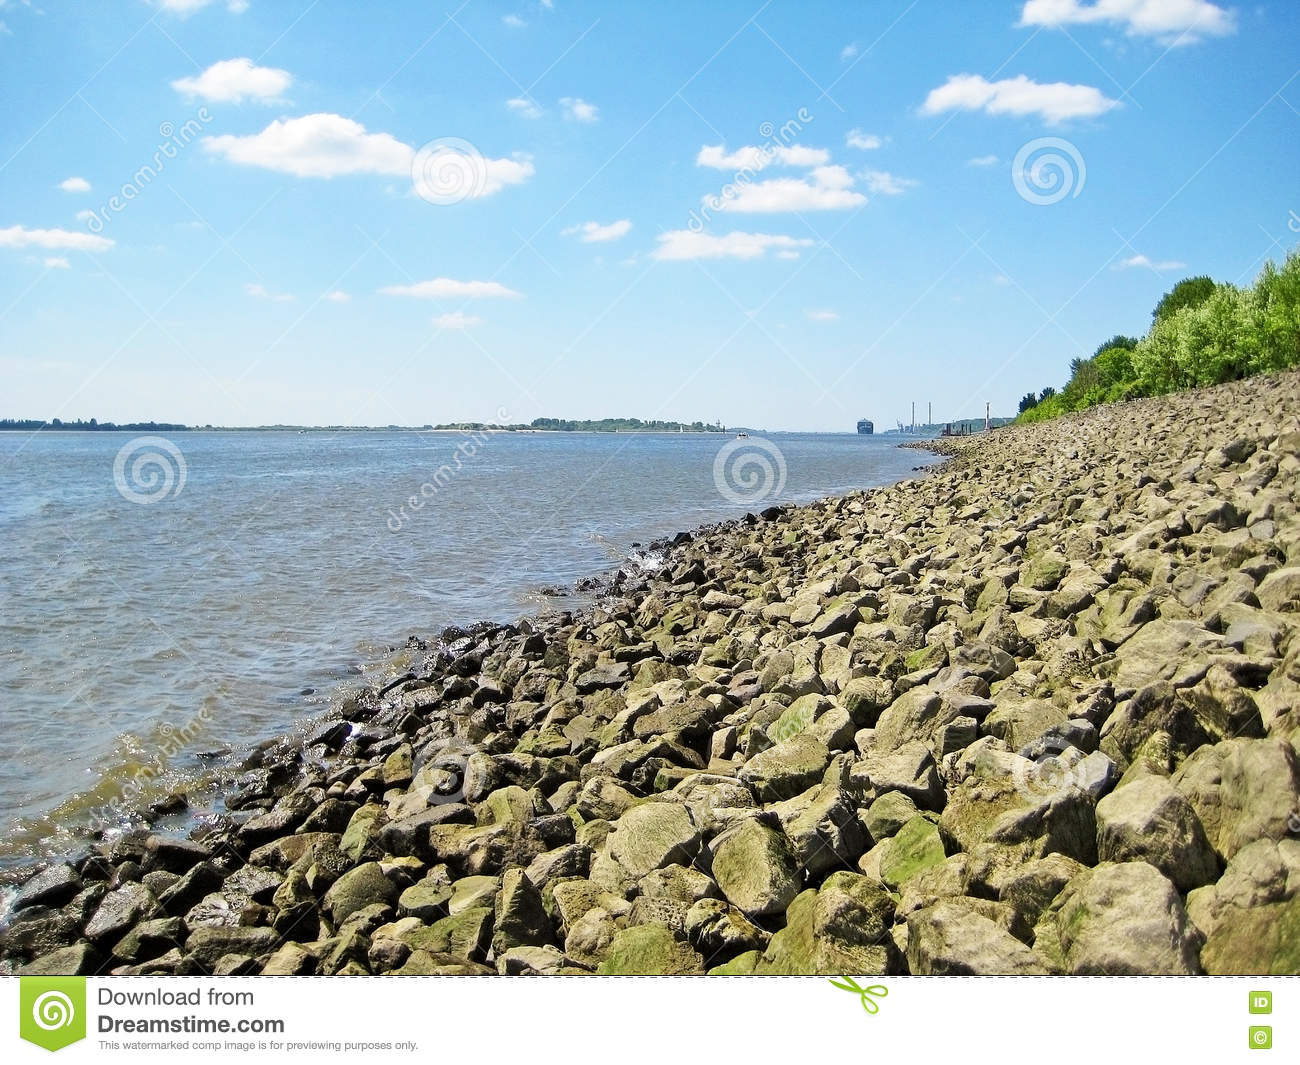 Stock photo hamburg germany riverside new - River Elbe Hamburg Riverside